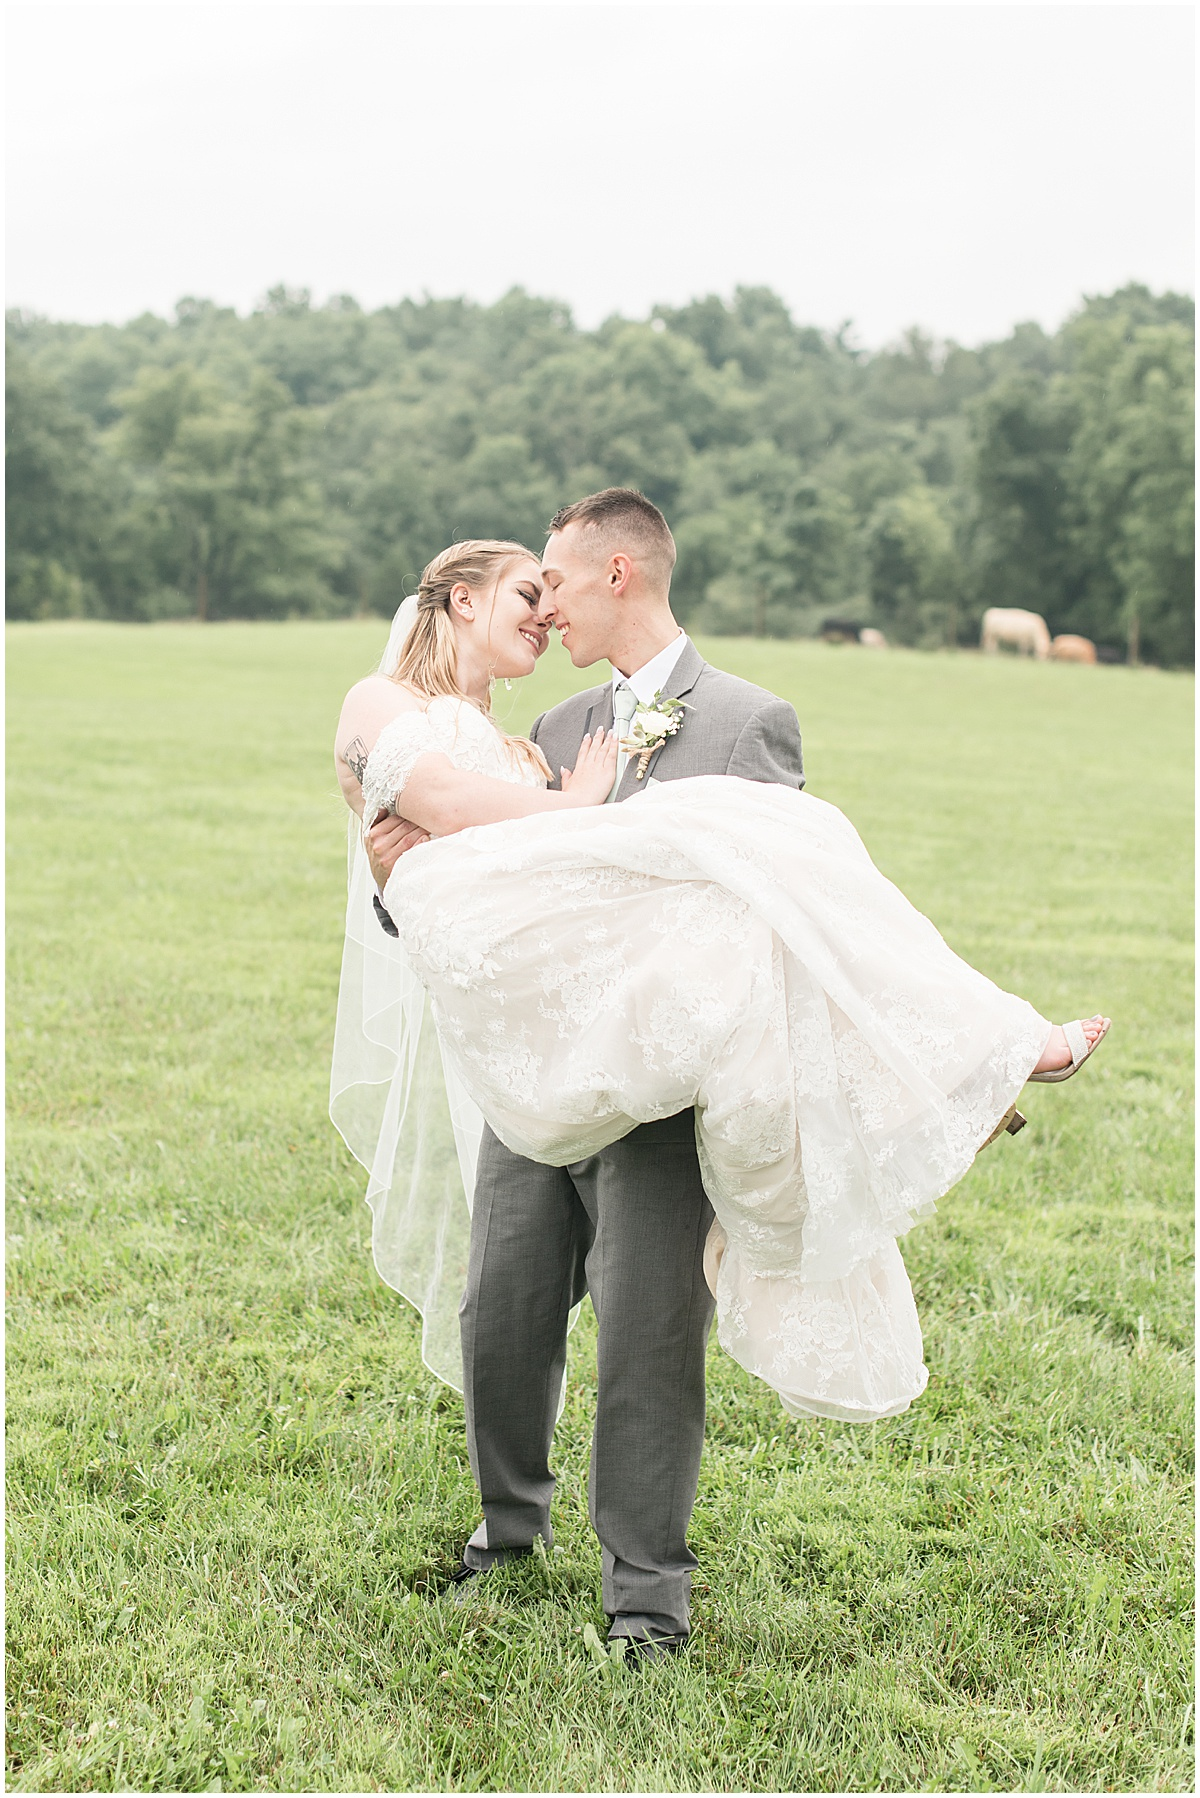 Bride and groom at wedding at Whippoorwill Hill in Bloomington, Indiana